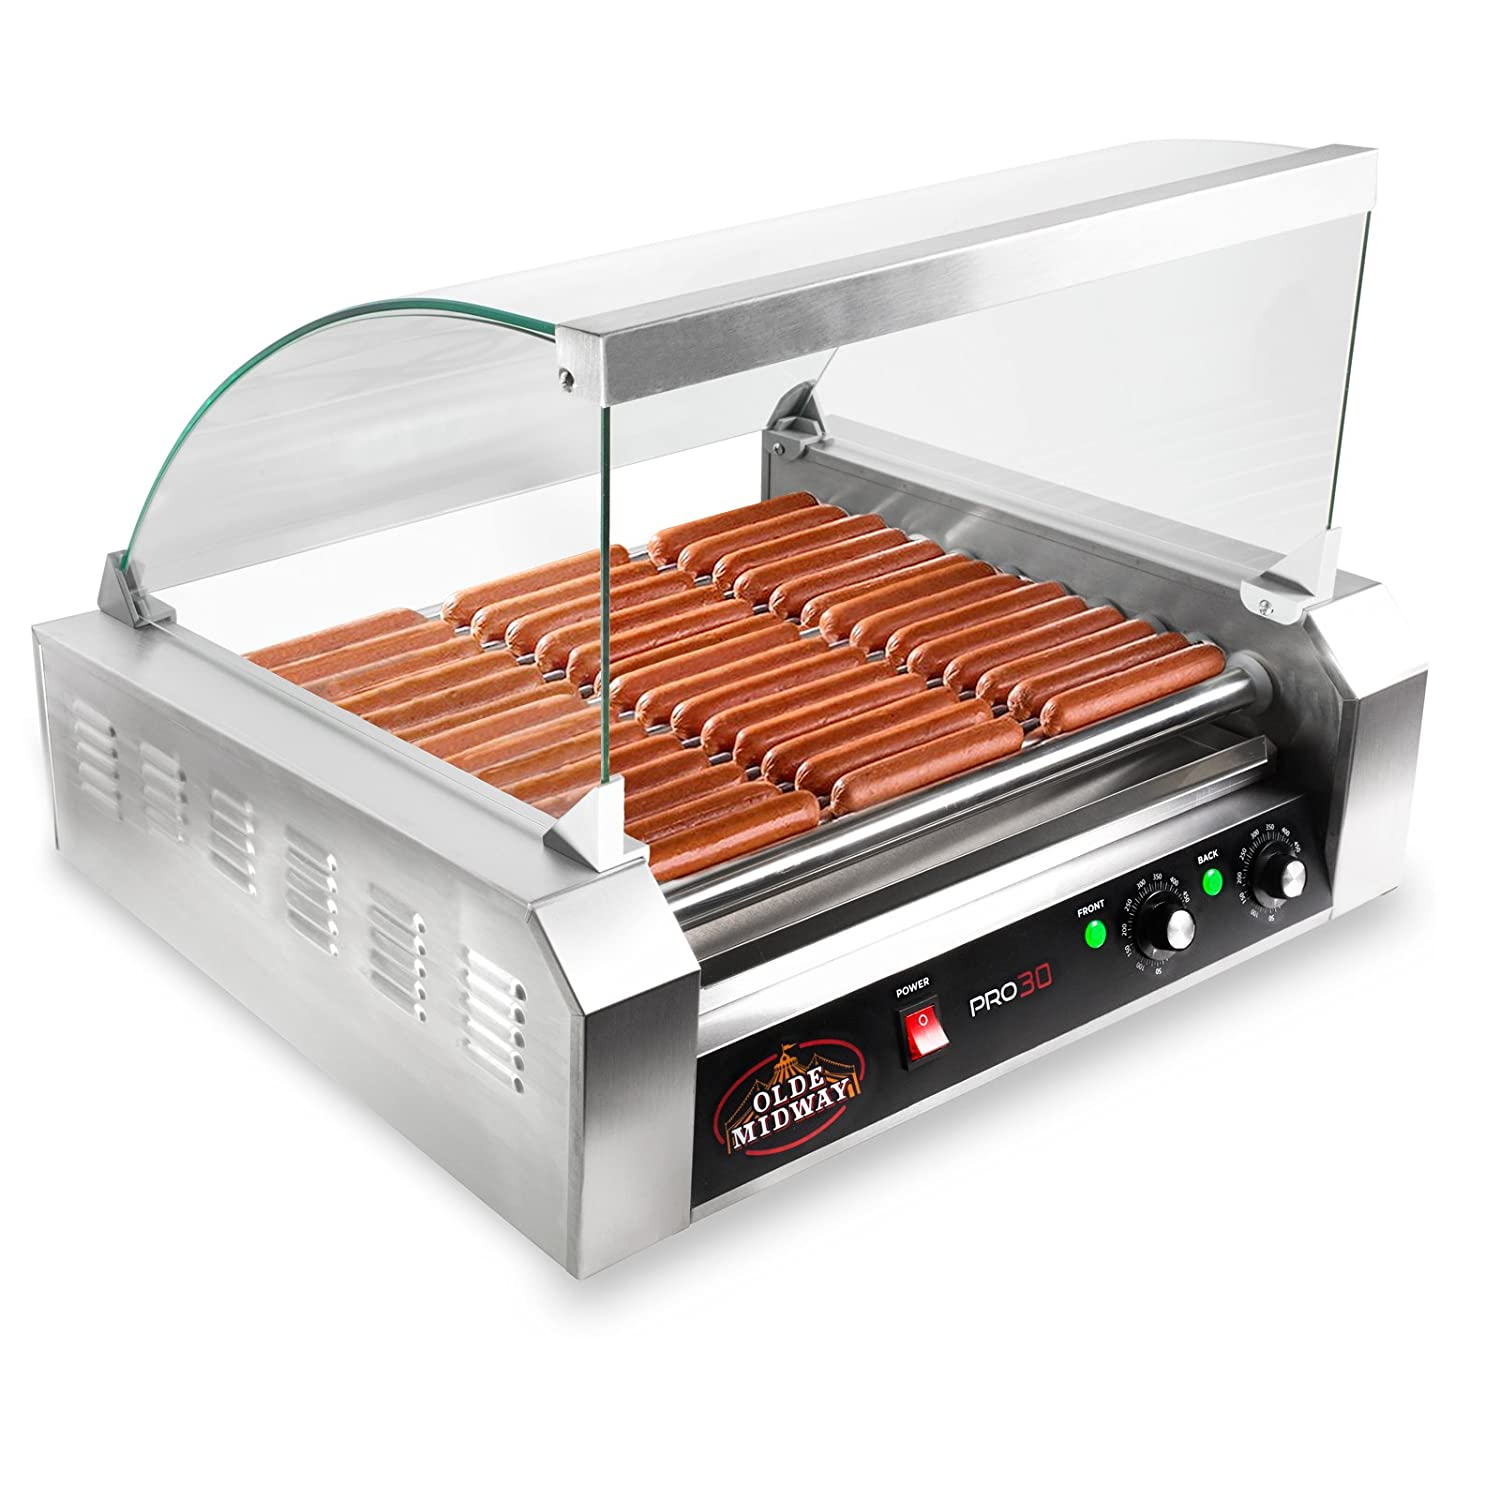 Uncategorized Hot Dog Cookers Specialty Kitchen Appliances olde midway electric 30 hot dog 11 roller grill cooker machine image is loading roller